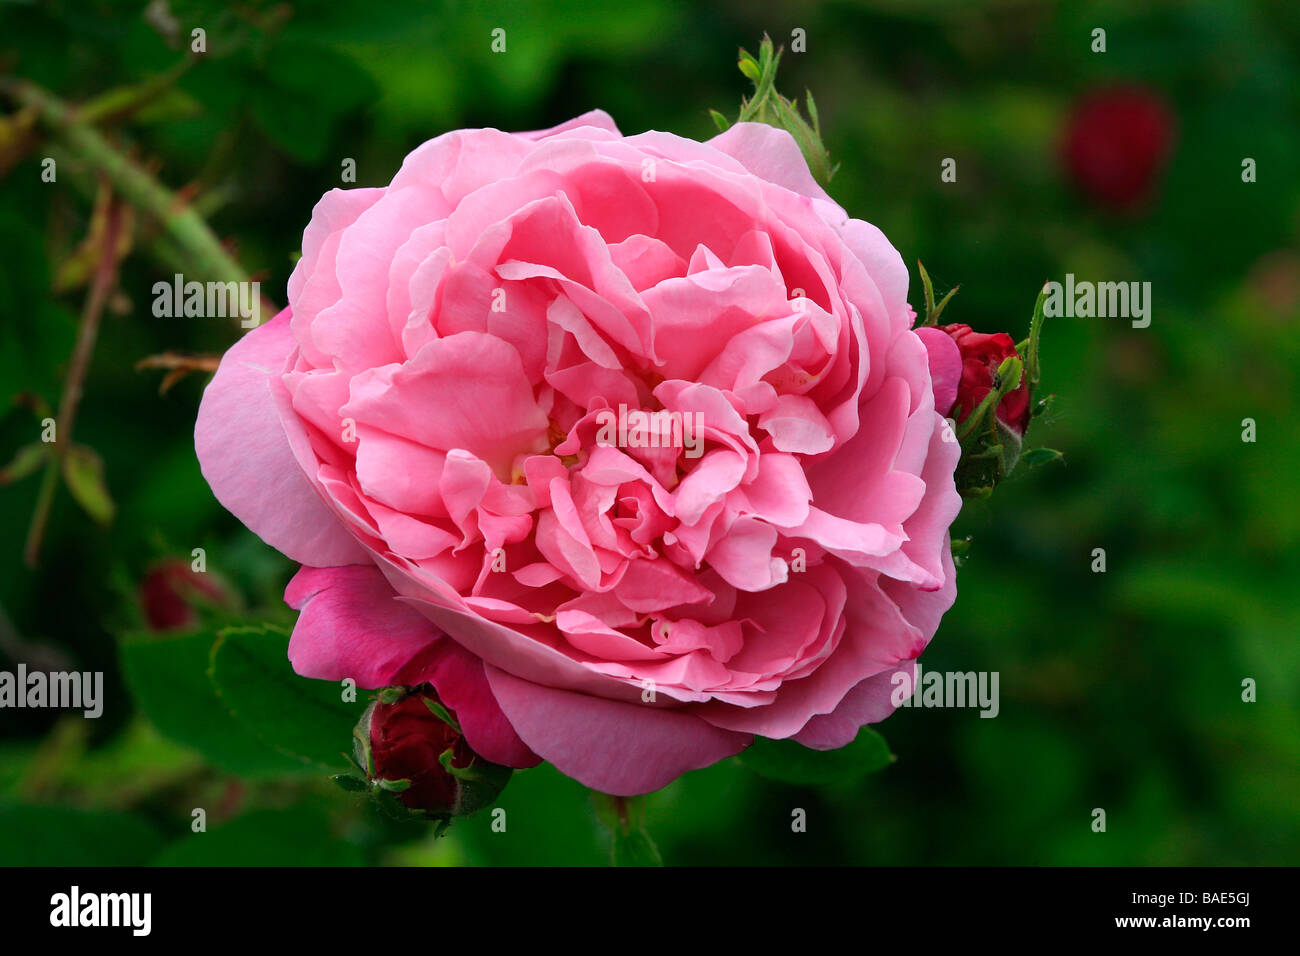 Rosa Belle Amour - Stock Image